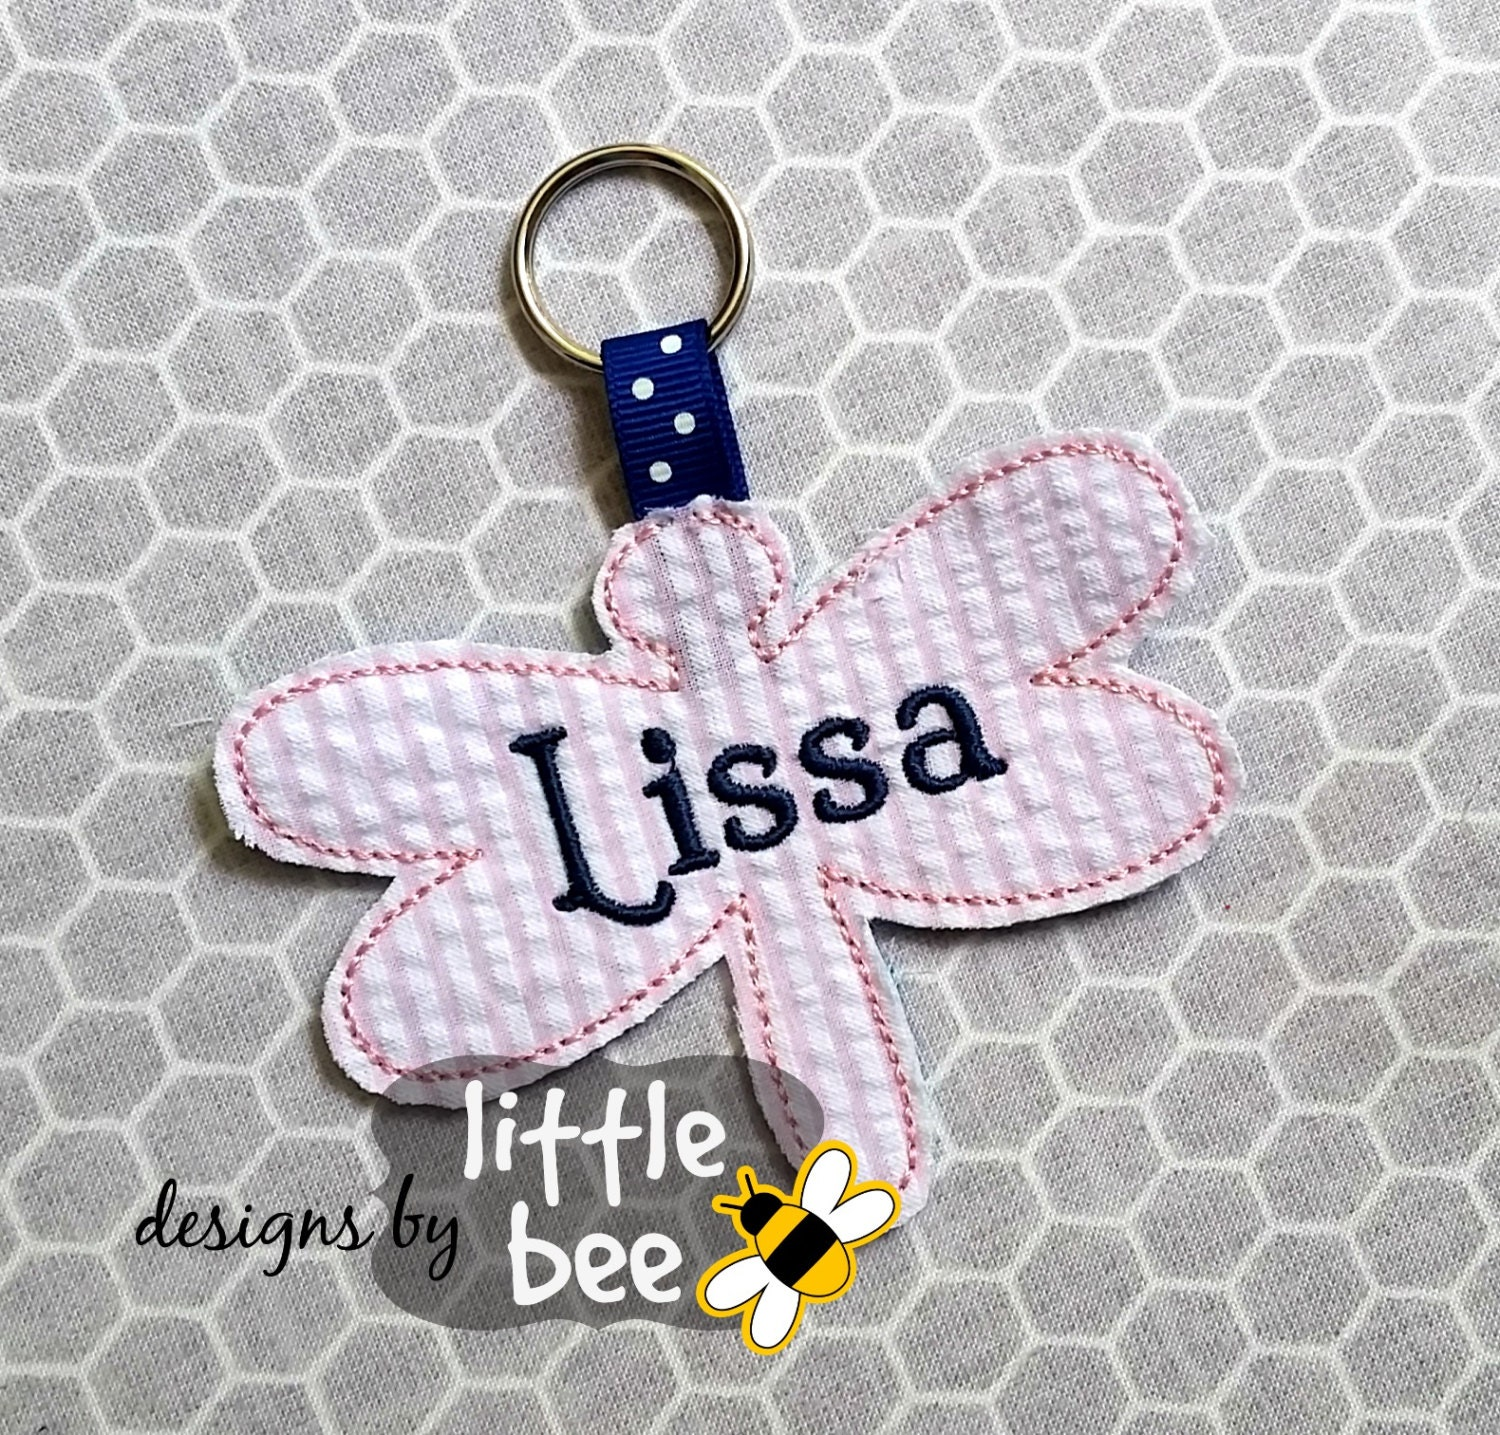 dragonfly sweet summer key fob keychain embroidery applique design monogramming sew pes dst